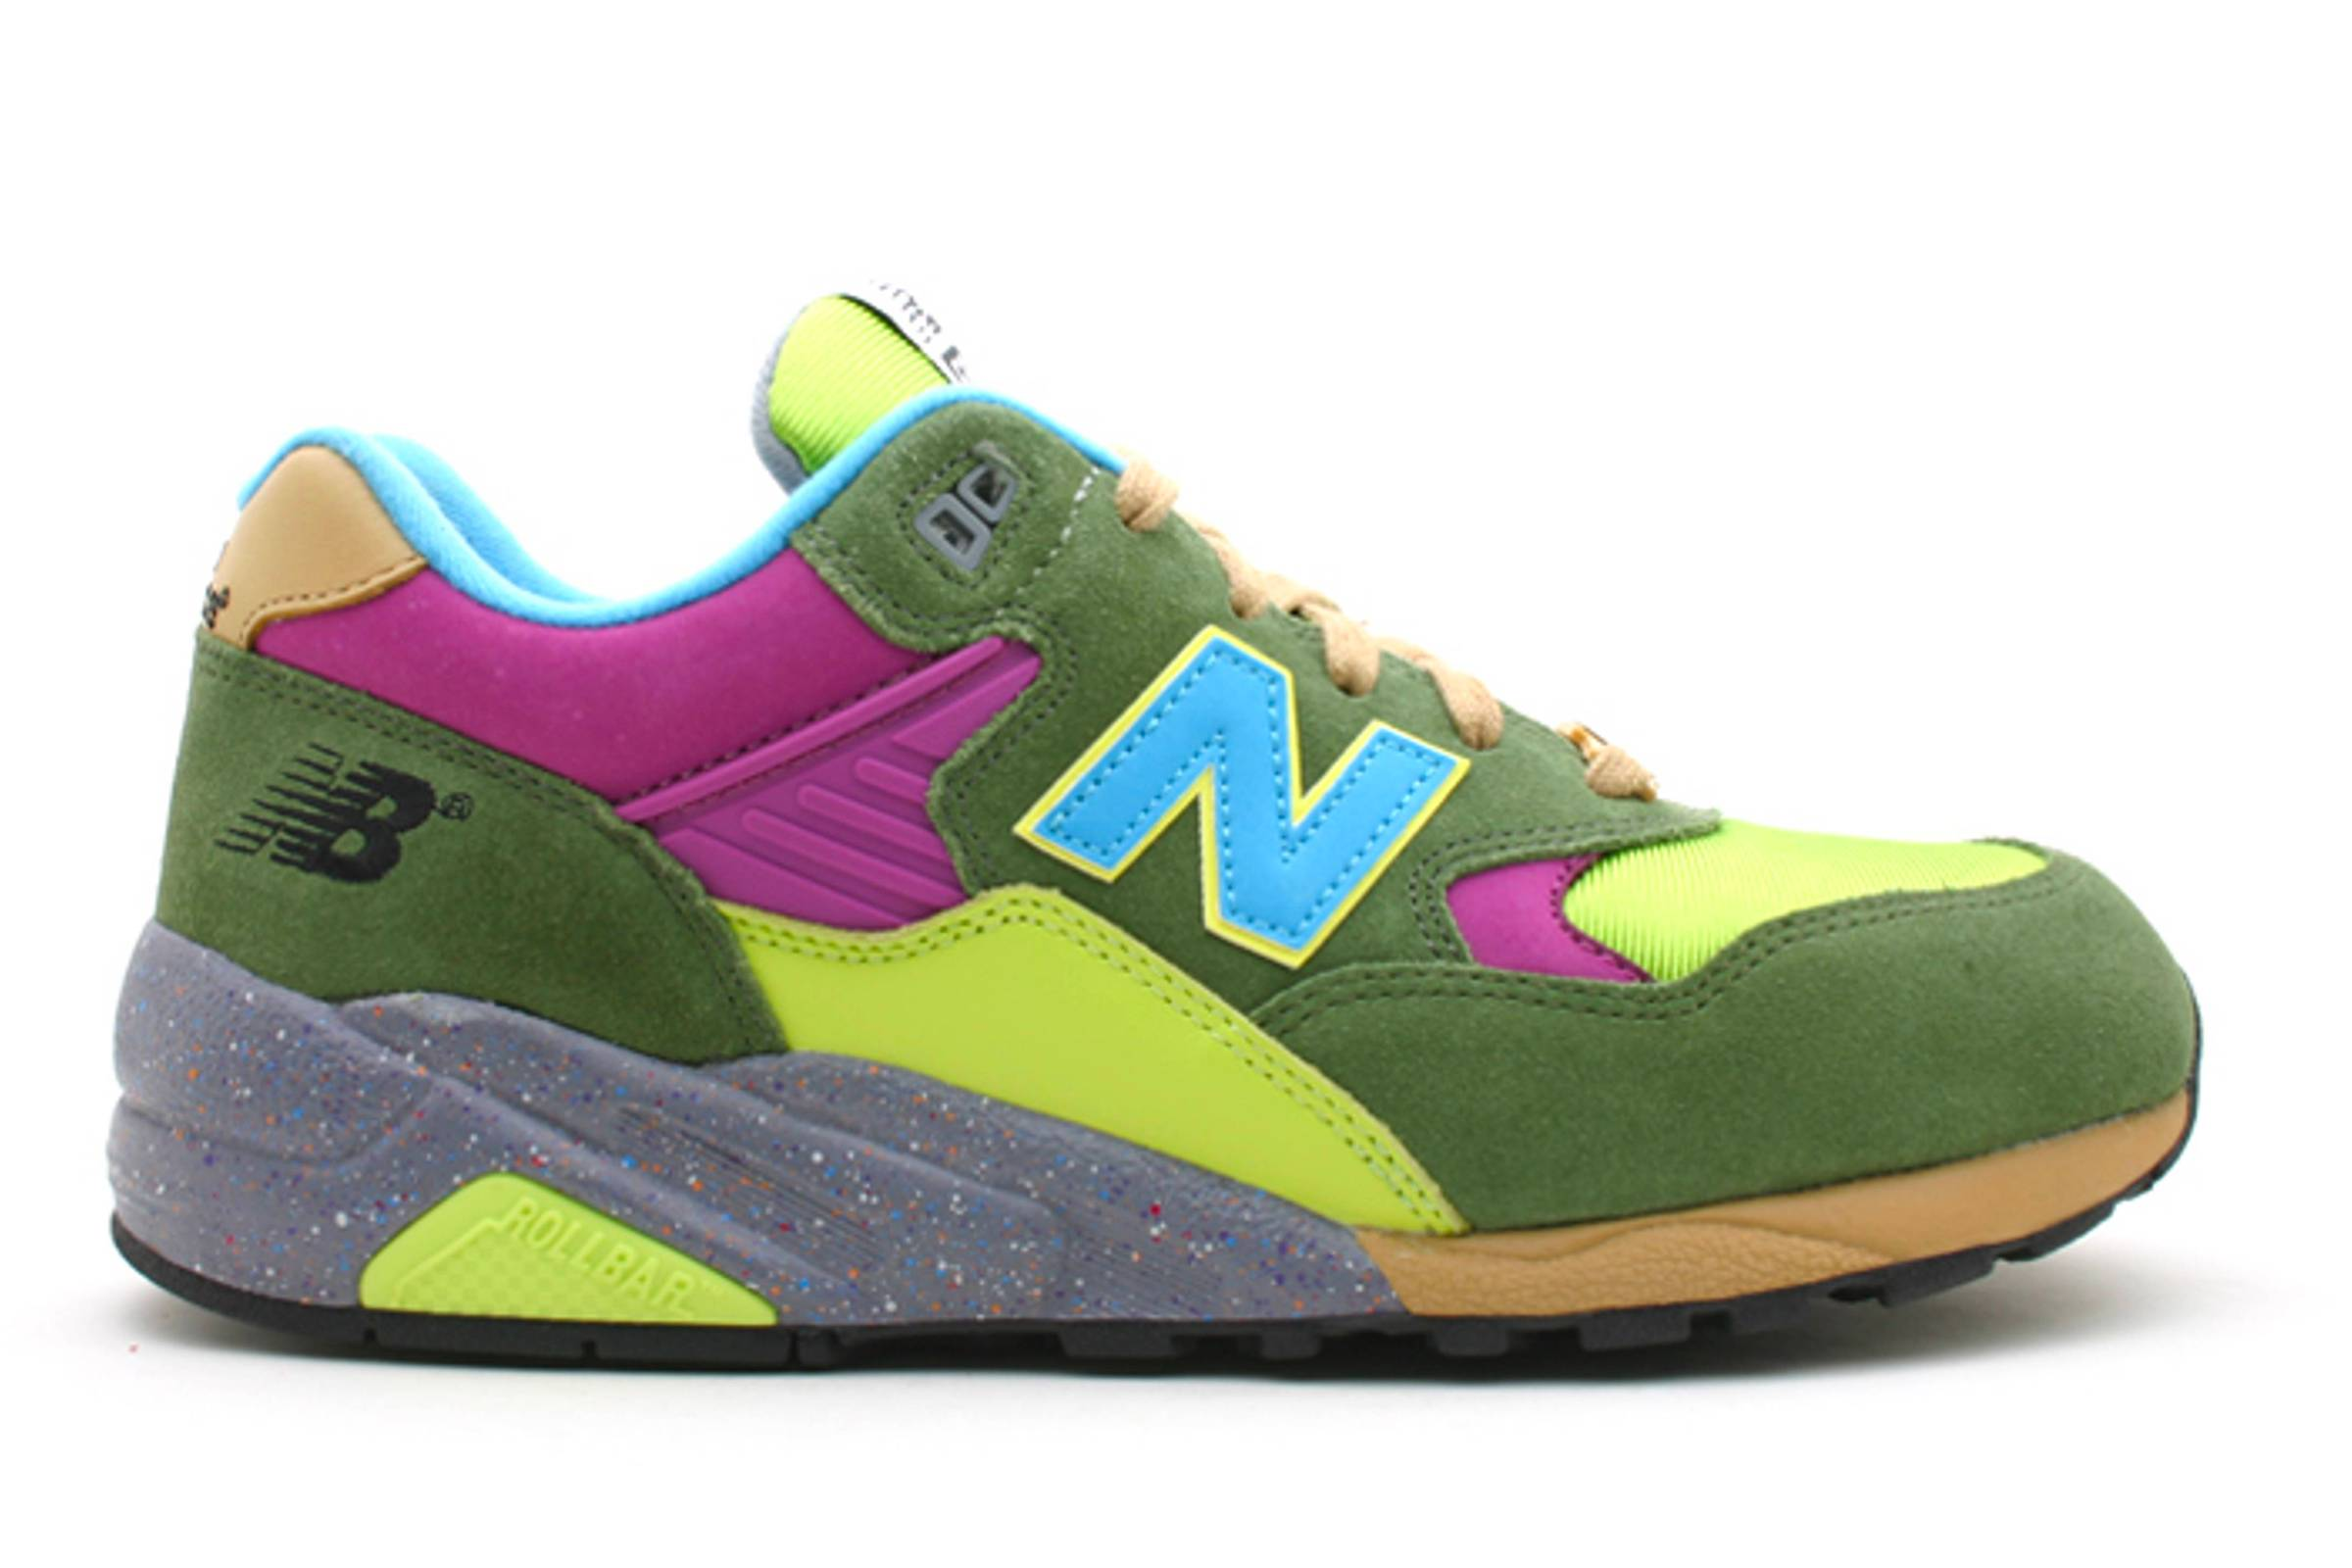 Stussy x Undefeated x Real Mad Hectic x New Balance 580